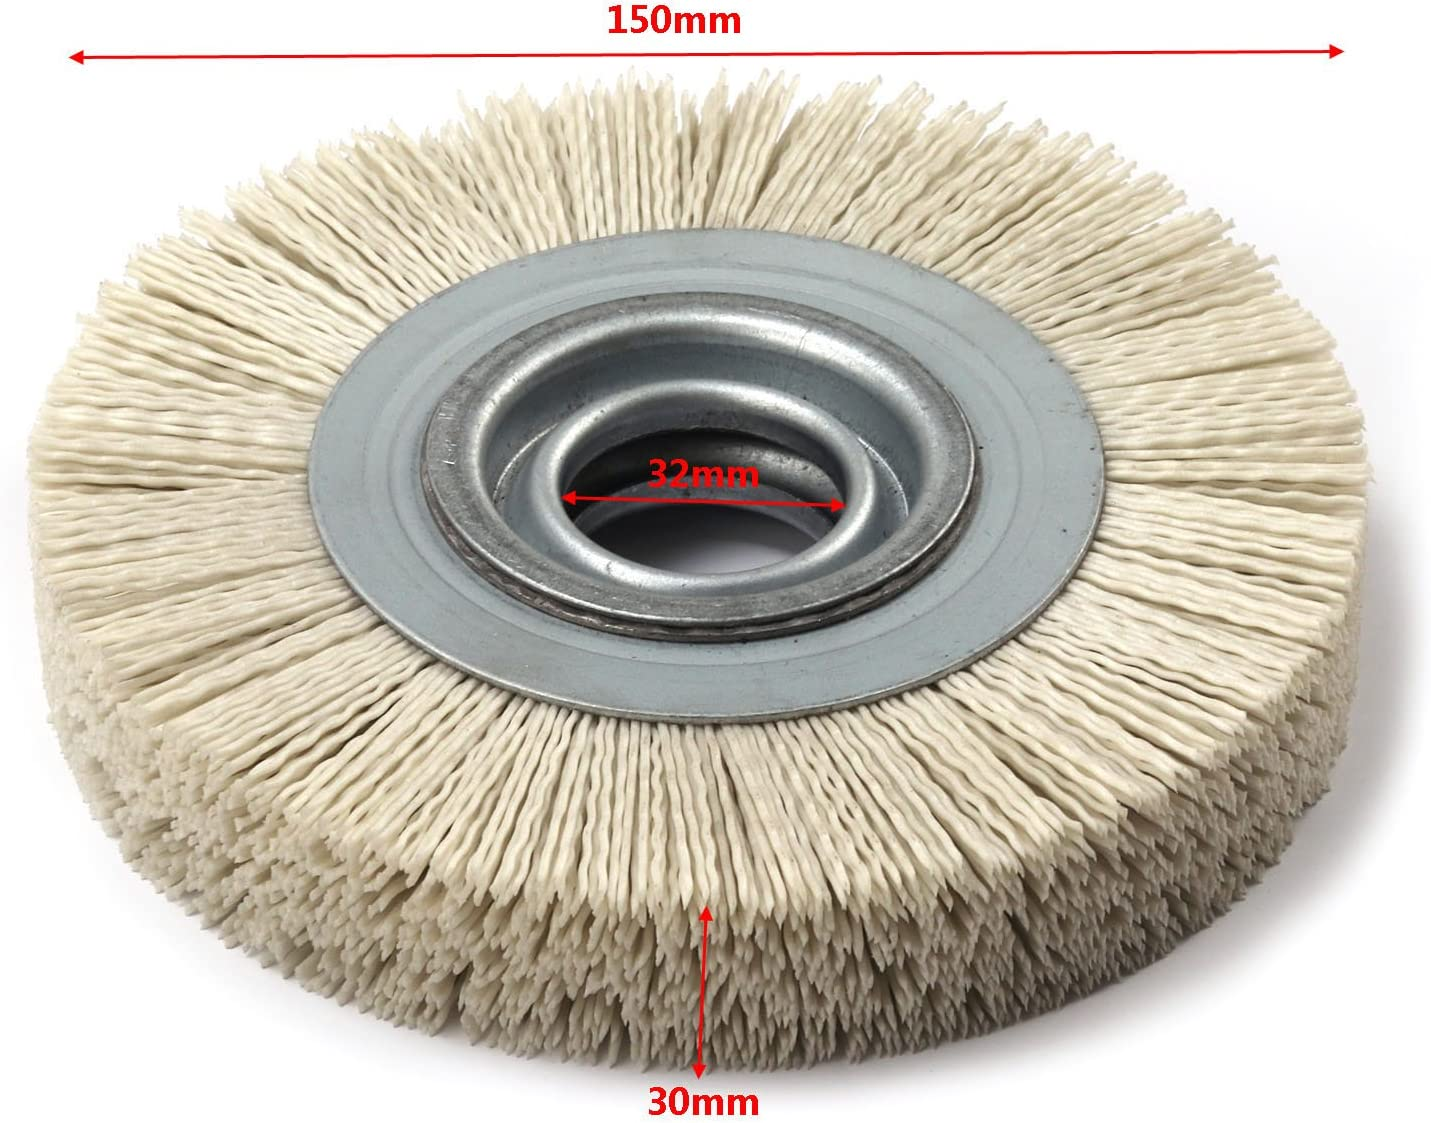 6 Inch 80 Grit Abrasive Wire Nylon Wheel Polish Bench Grinder Wood Furniture